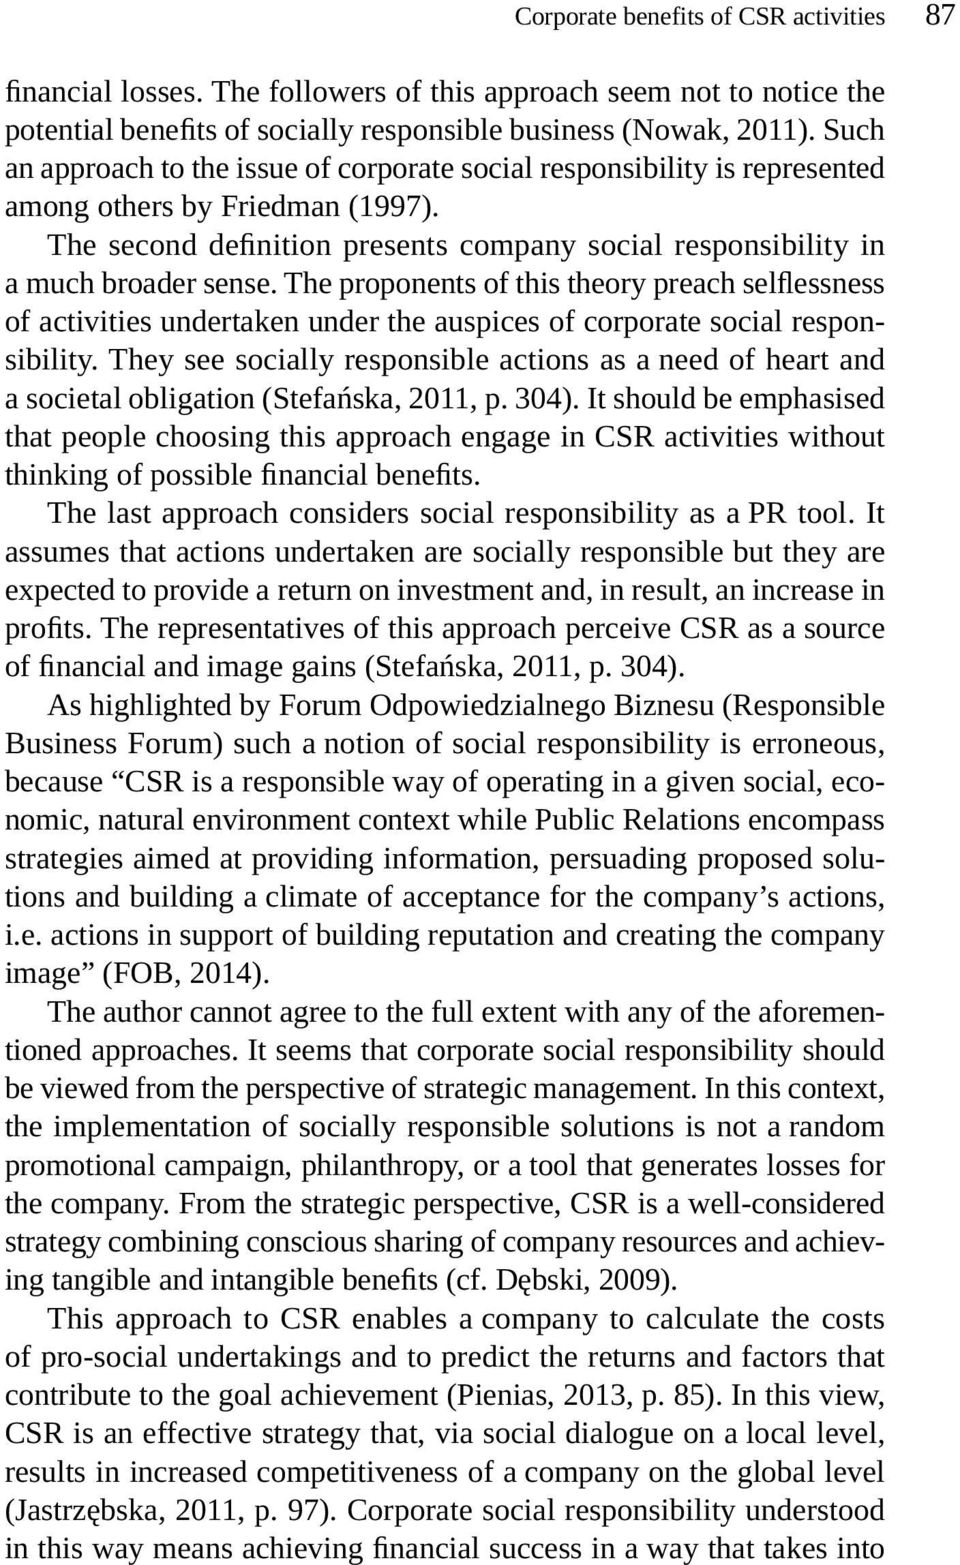 The proponents of this theory preach selflessness of activities undertaken under the auspices of corporate social responsibility.